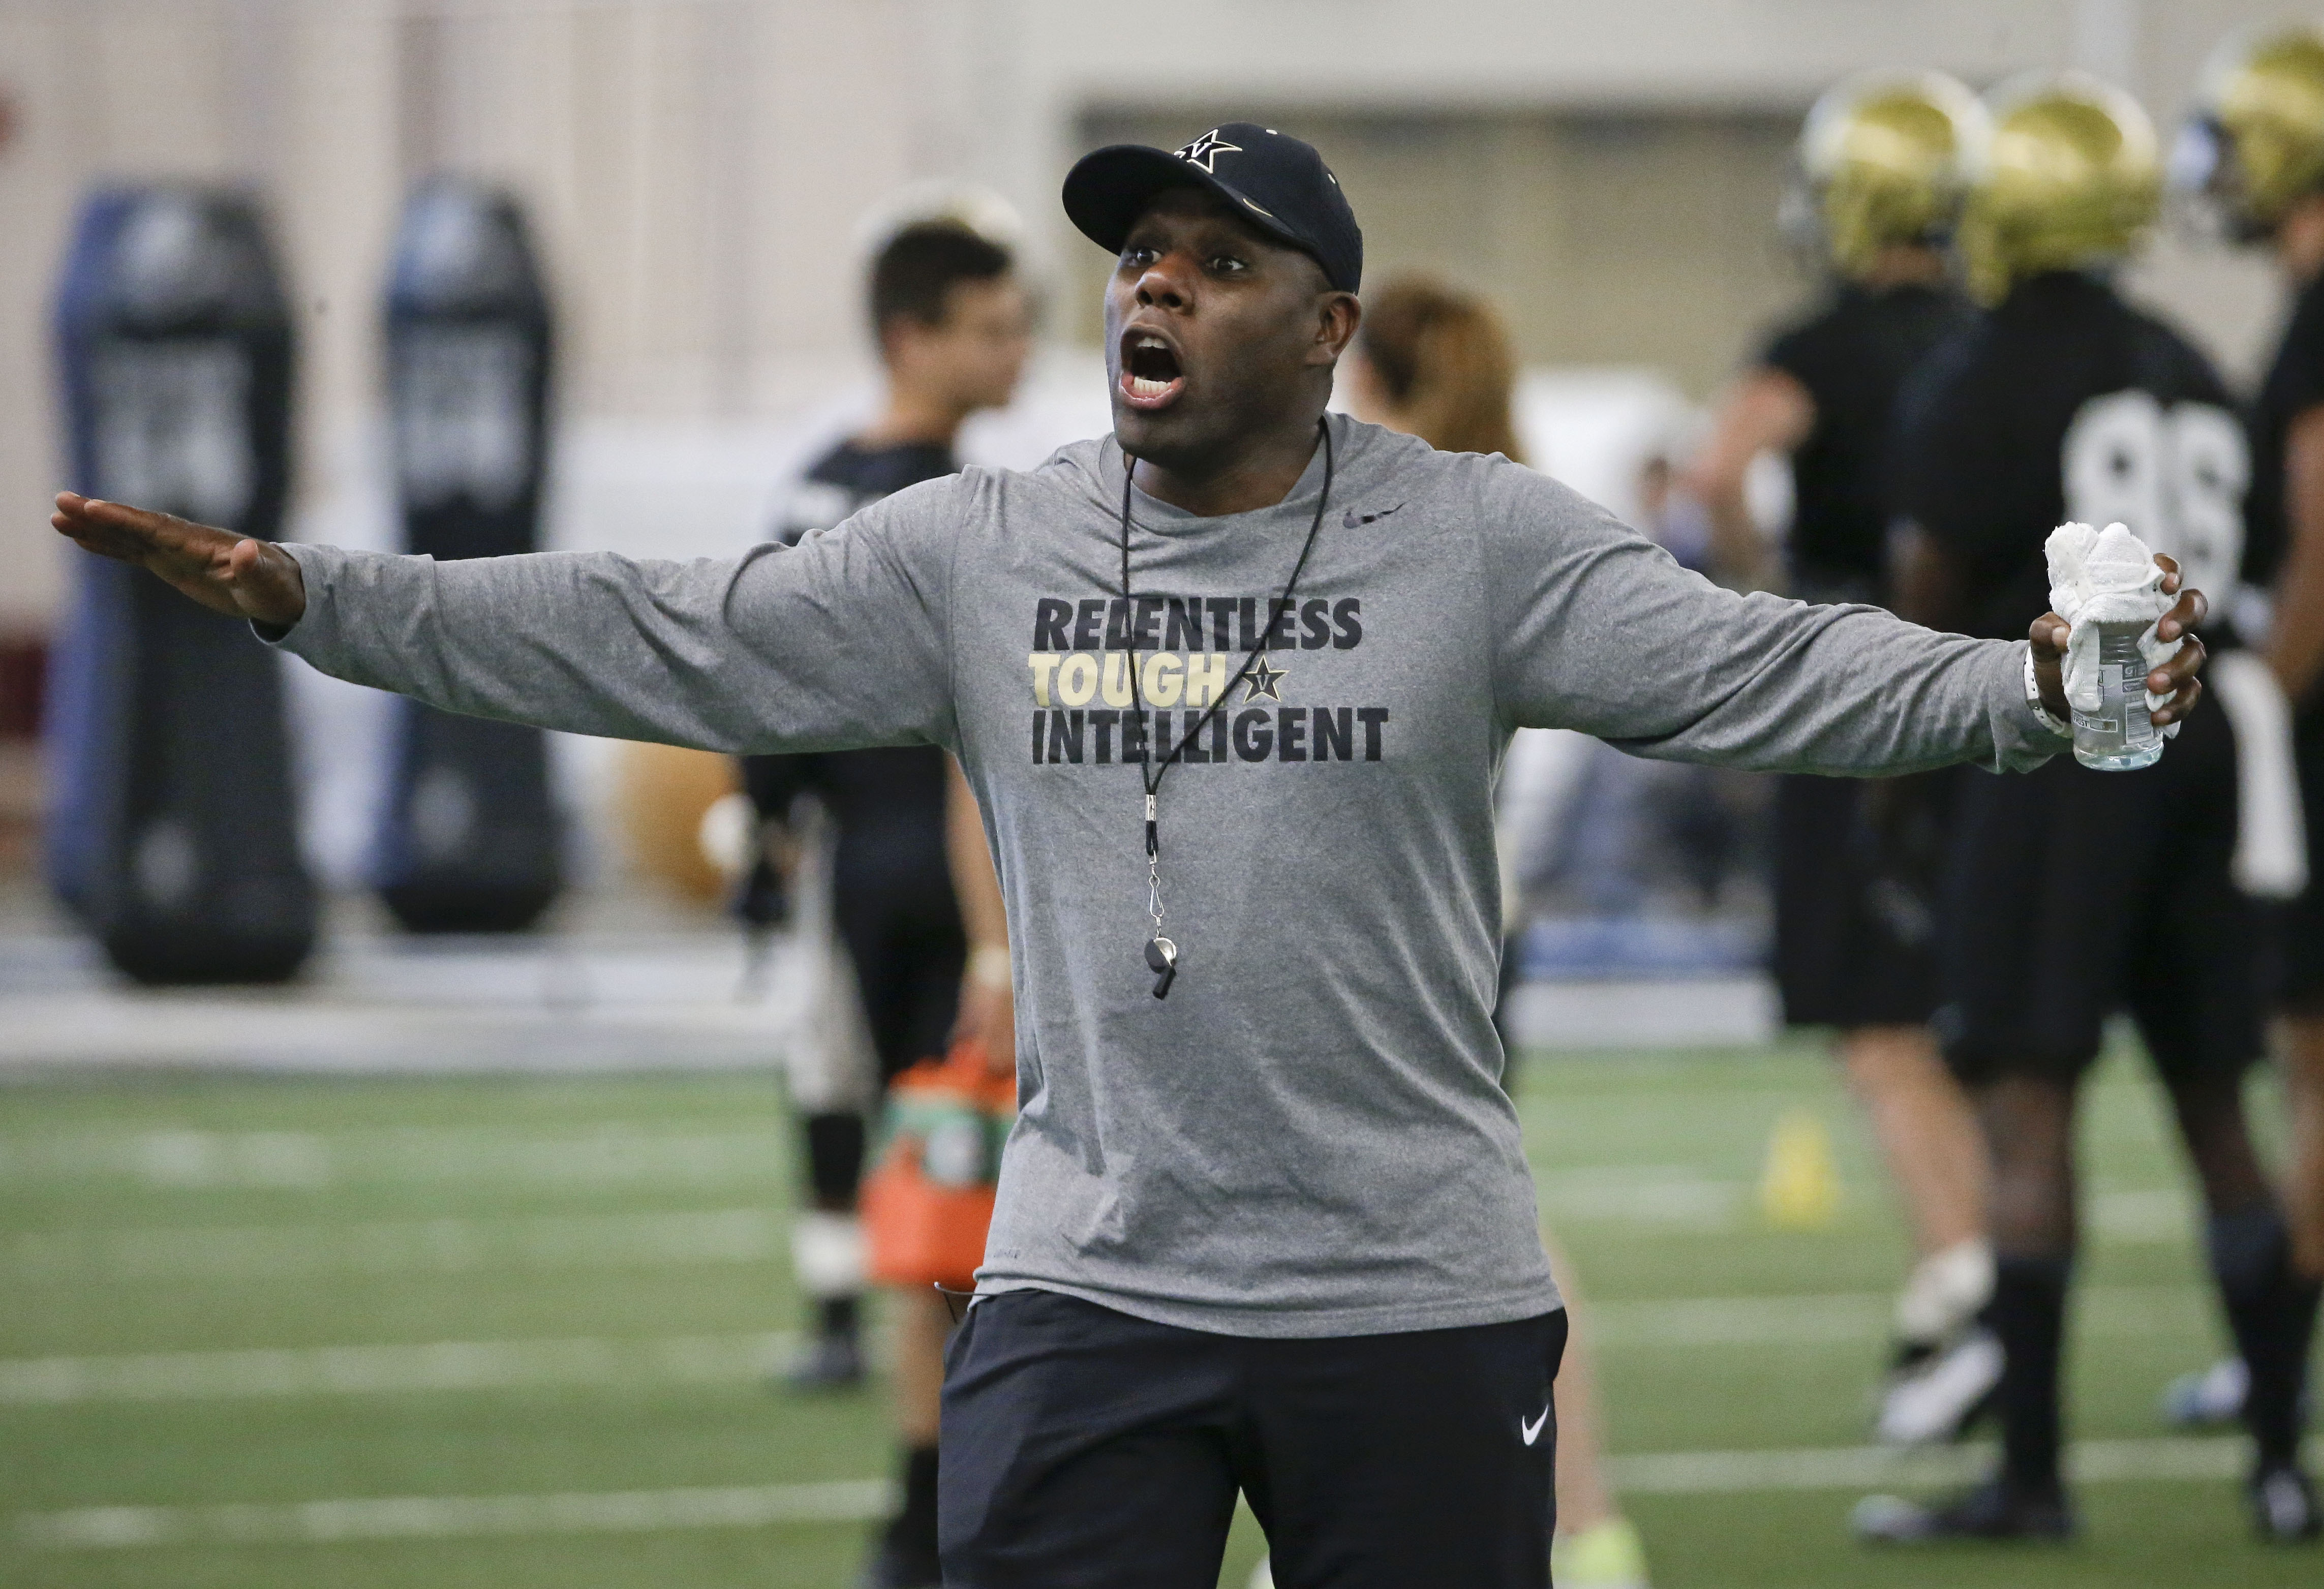 FILE -- In this Aug. 6, 2015, file photo, Vanderbilt head coach Derek Mason leads an NCAA college football practice in Nashville, Tenn. In his second season, Mason hopes to improve on last year's 3-9 record, failing to win even one game in the Southeaster